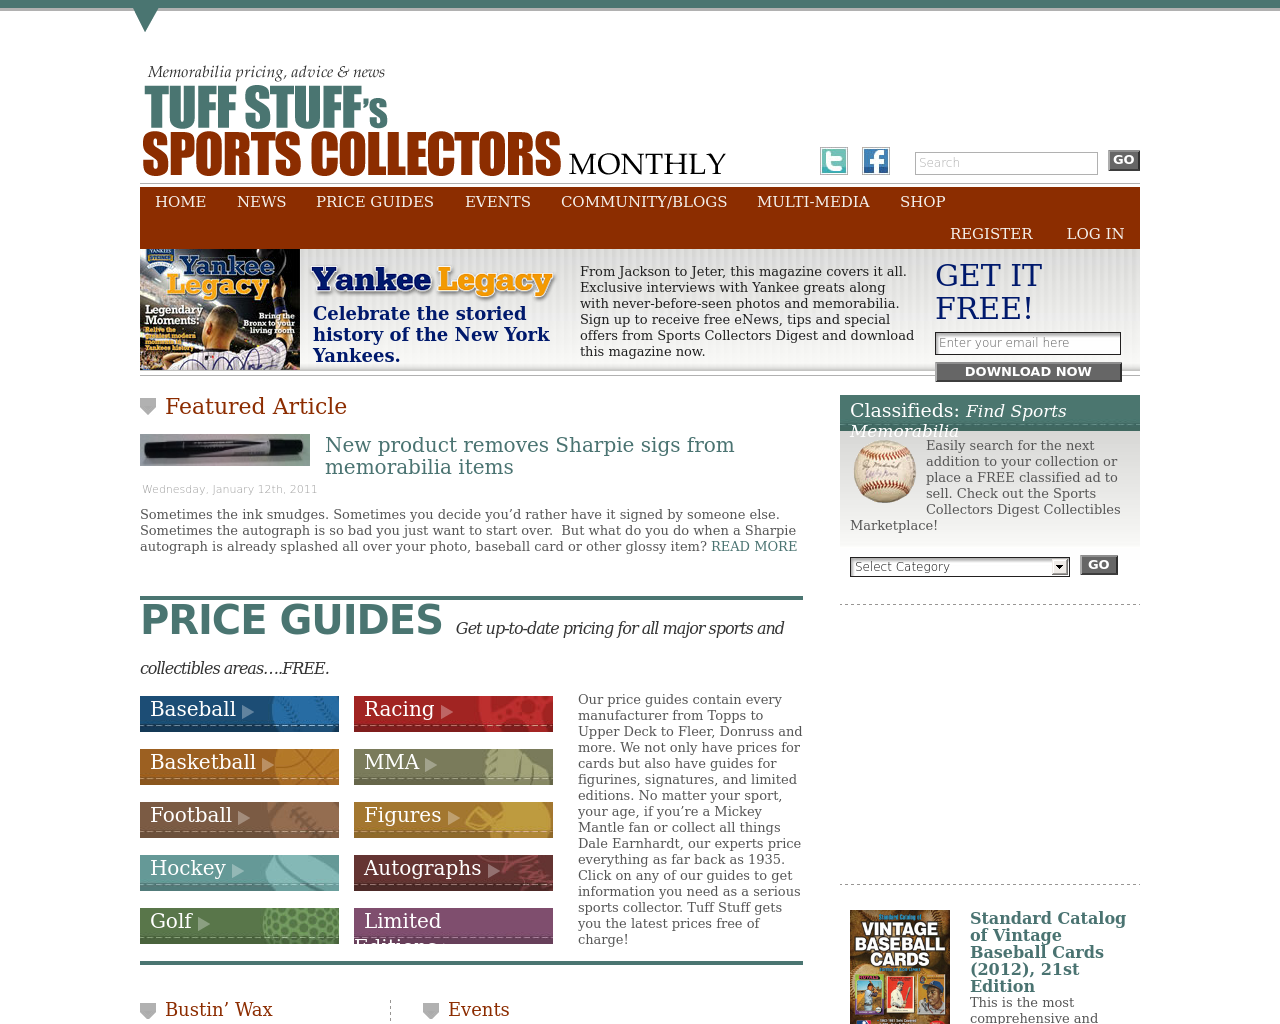 Tuff-Stuff's-Sports-Collectors-Monthly-Advertising-Reviews-Pricing